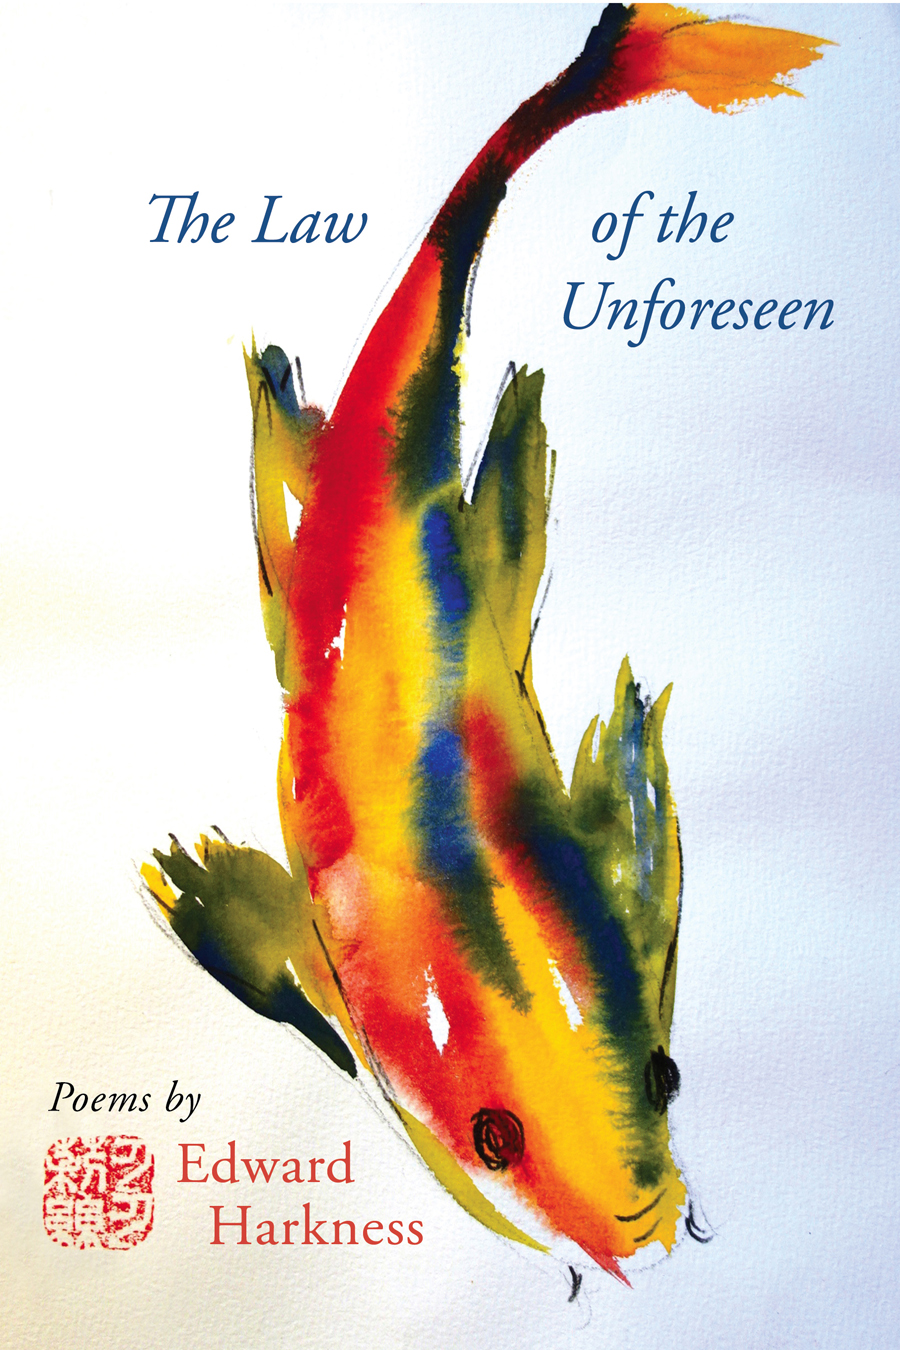 The Law of the Unforeseen By Edward Harkness